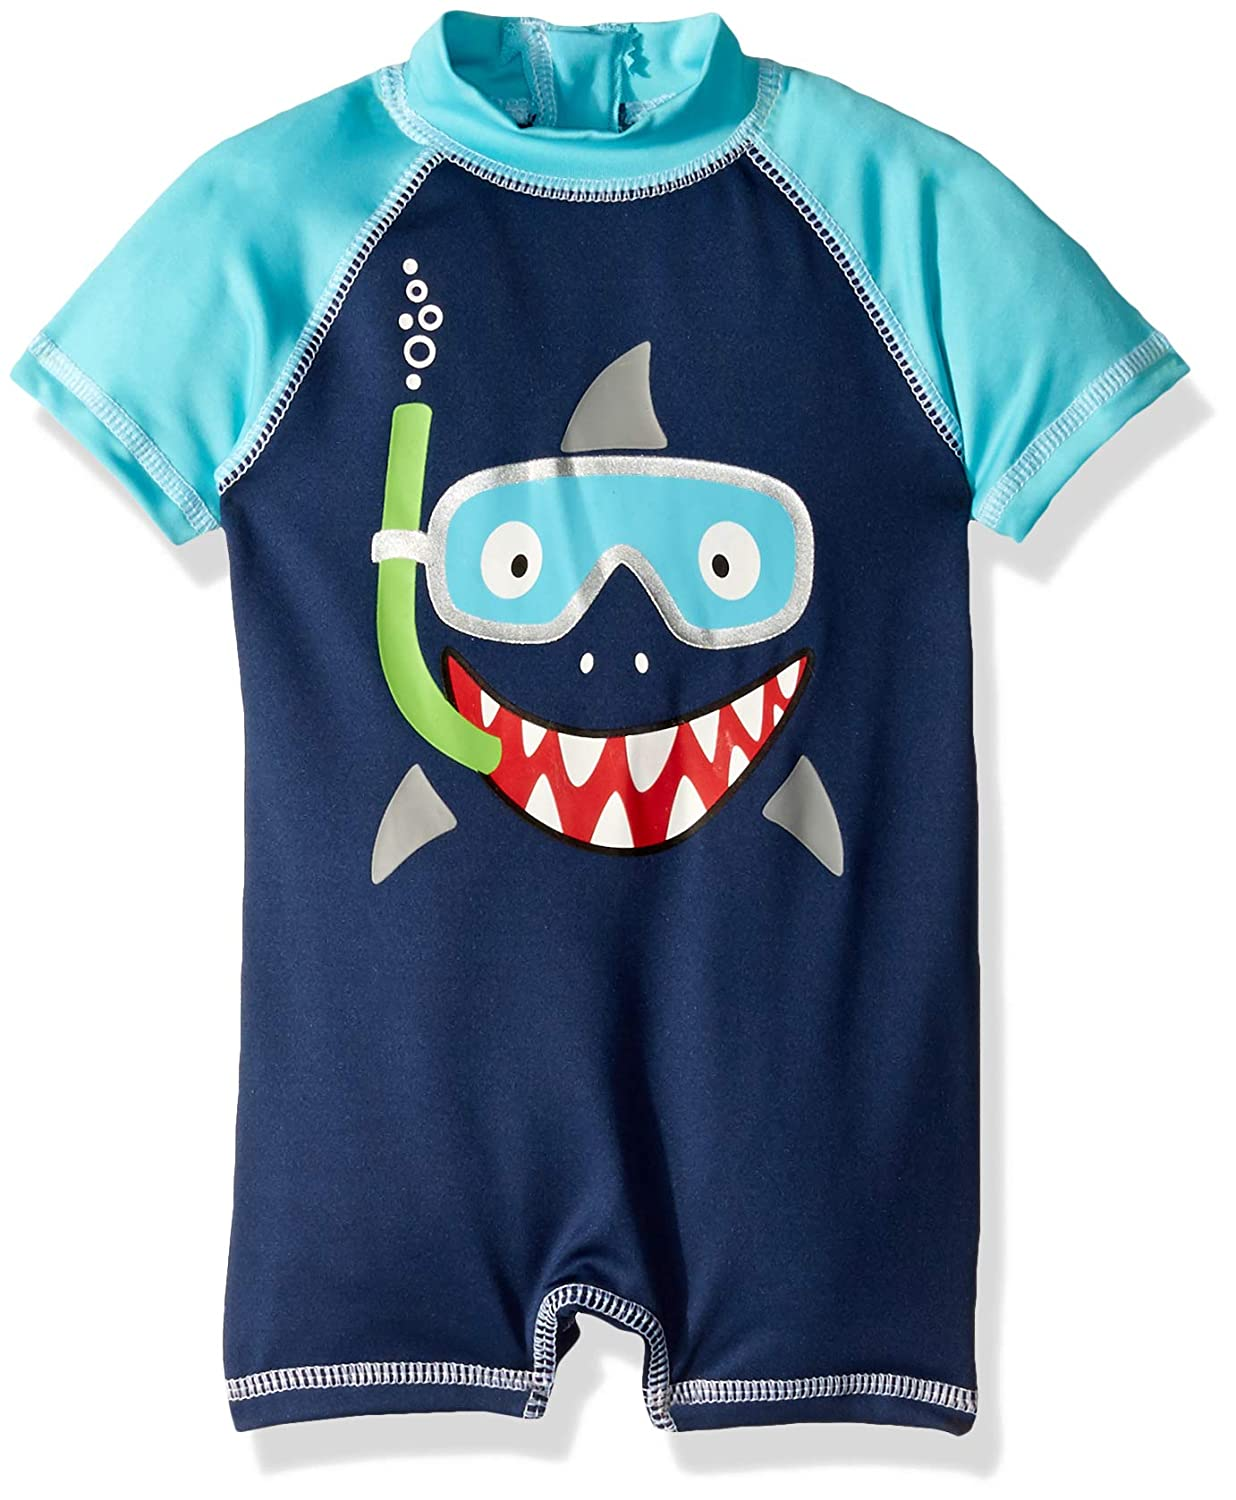 Wippette Baby Boys Printed Rashguards